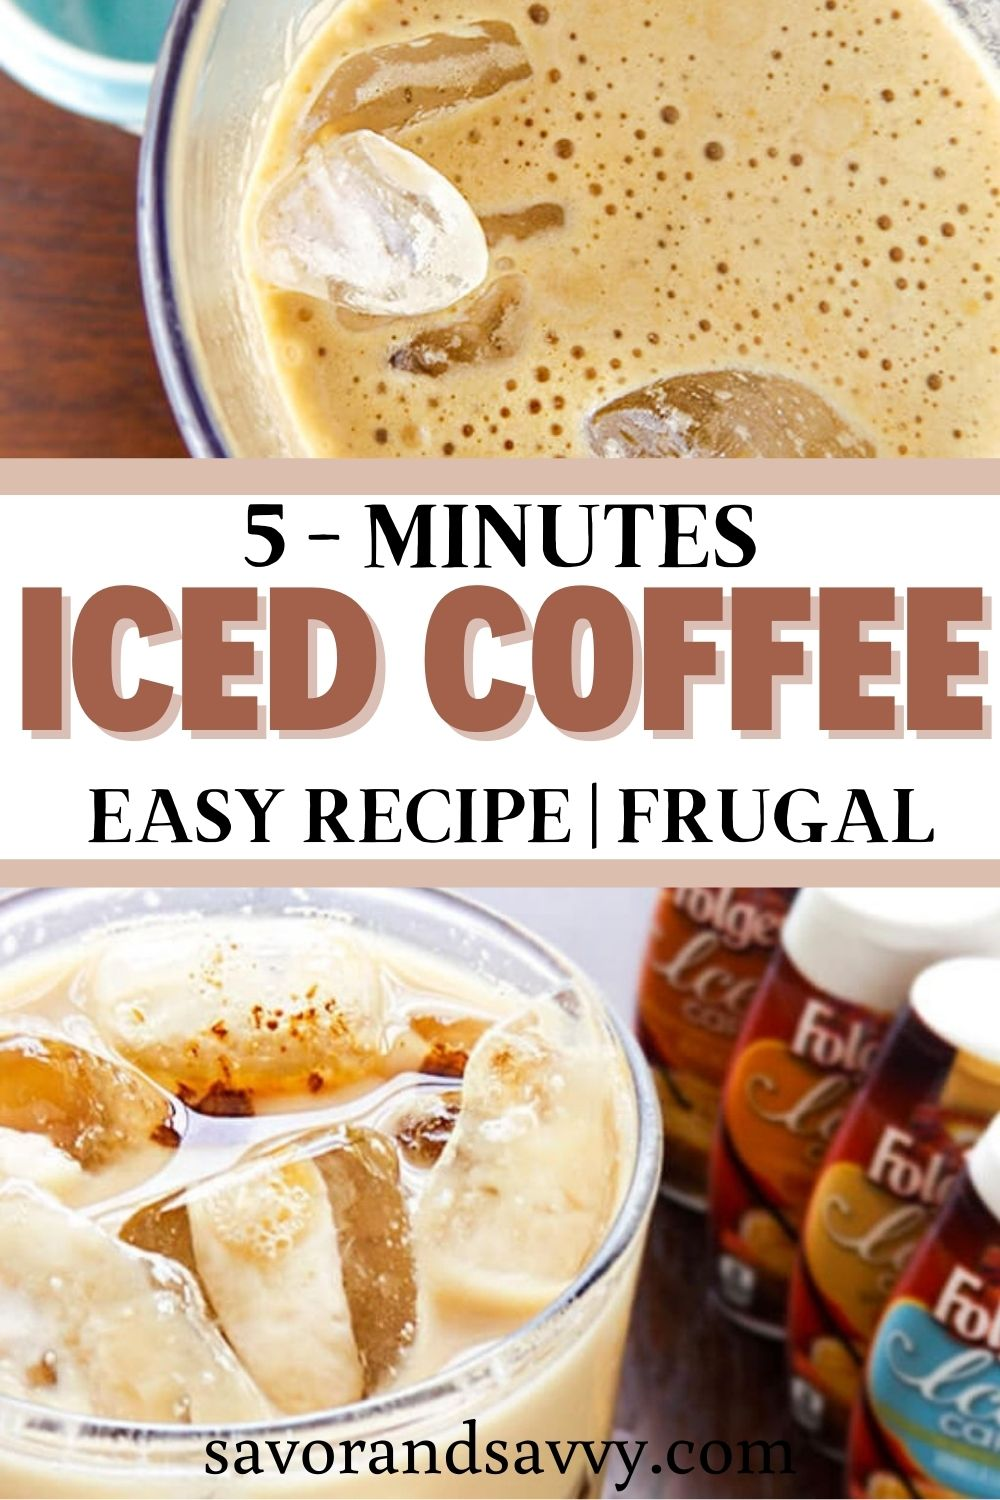 Quick and Easy Iced Coffee